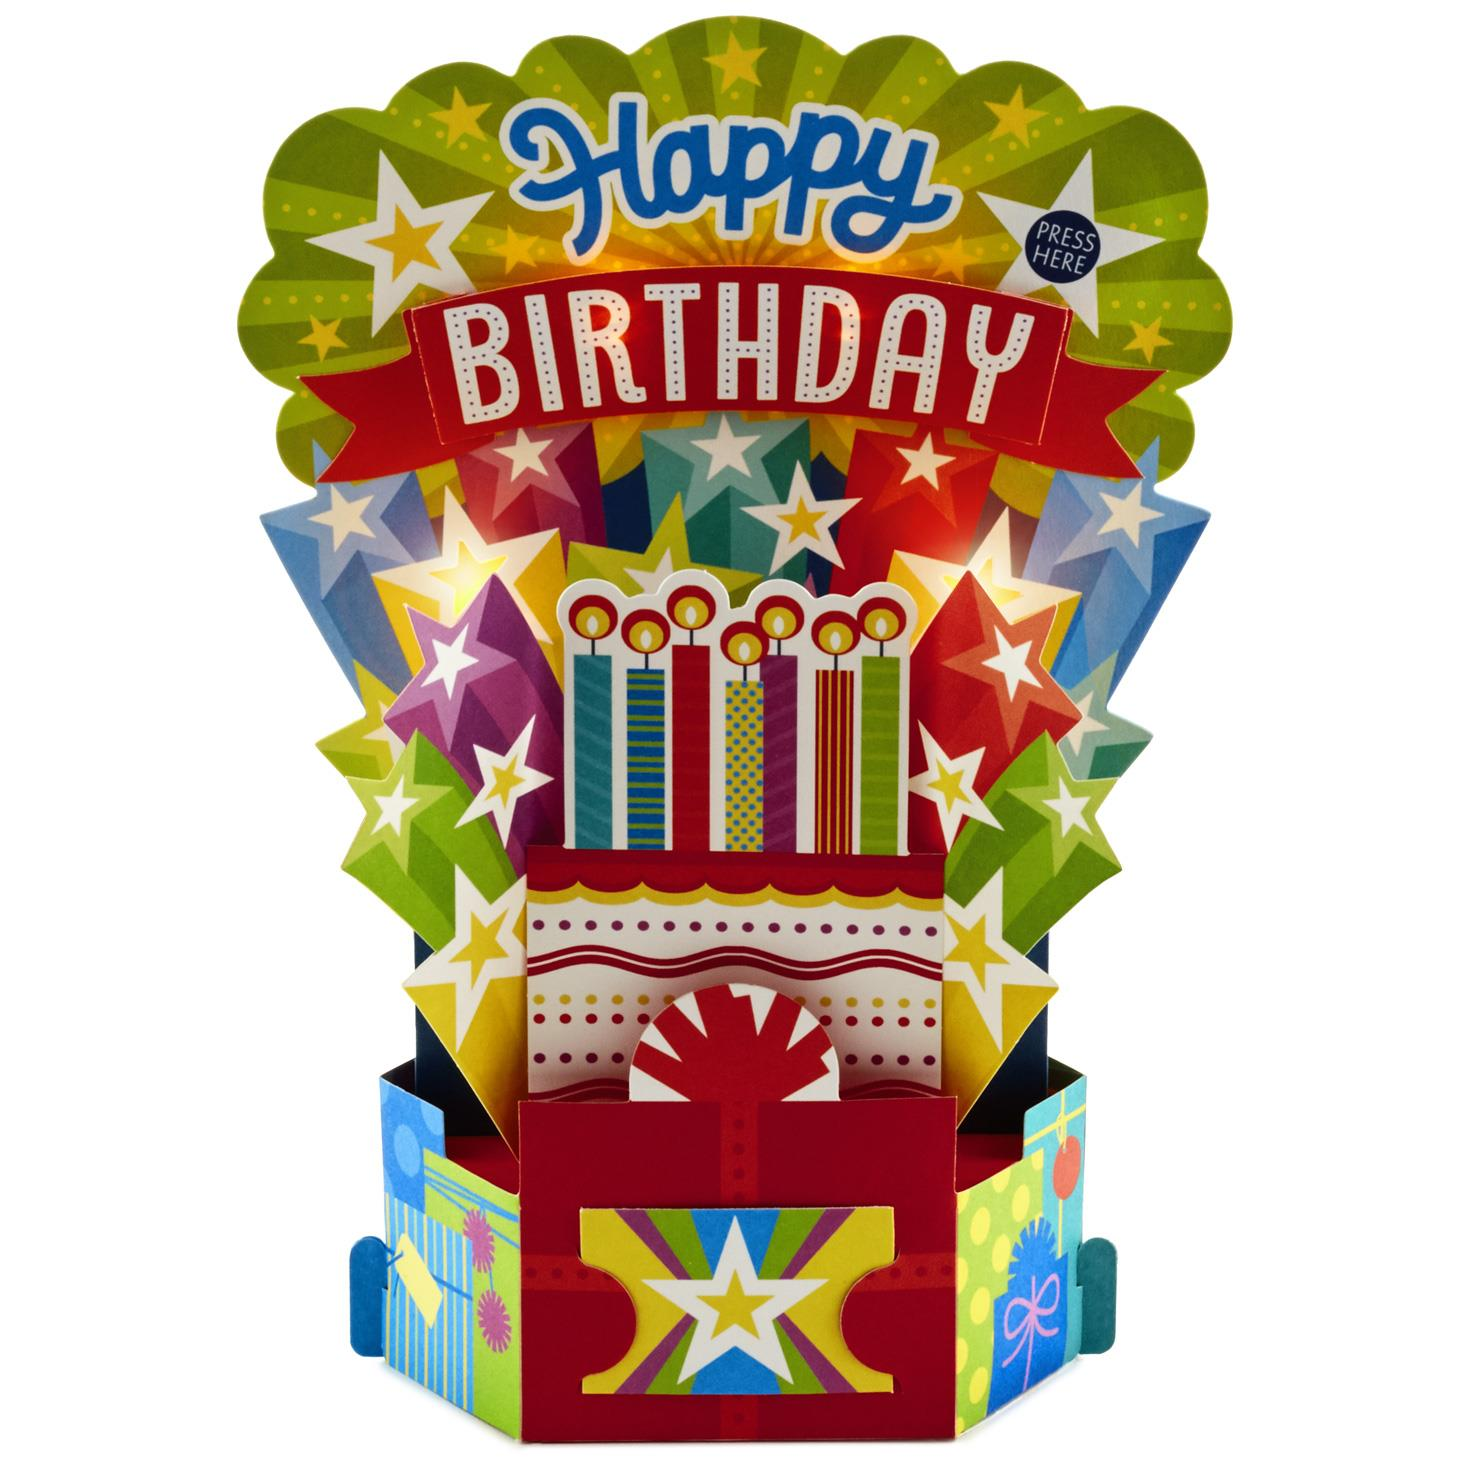 Birthday Cake With Candles Pop Up Musical Birthday Card ...